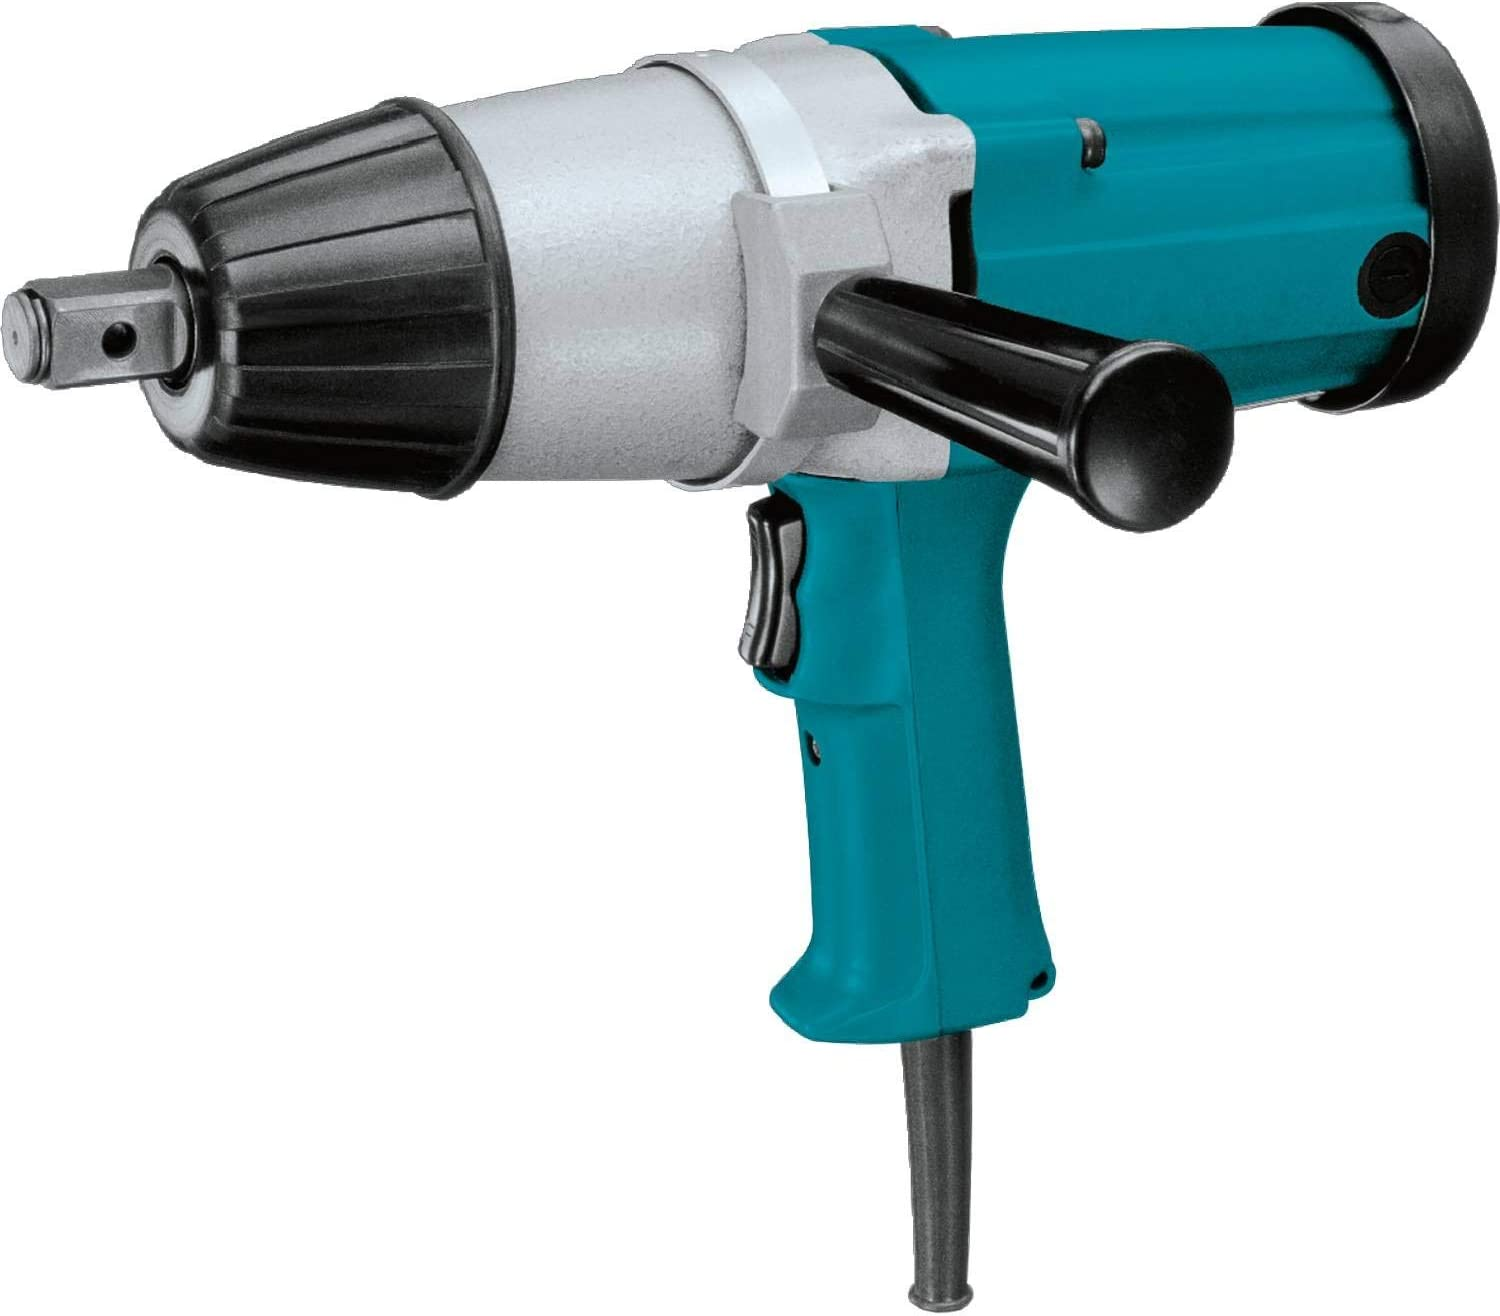 Impact Wrench, 120VAC, 9 Amps, 3 4